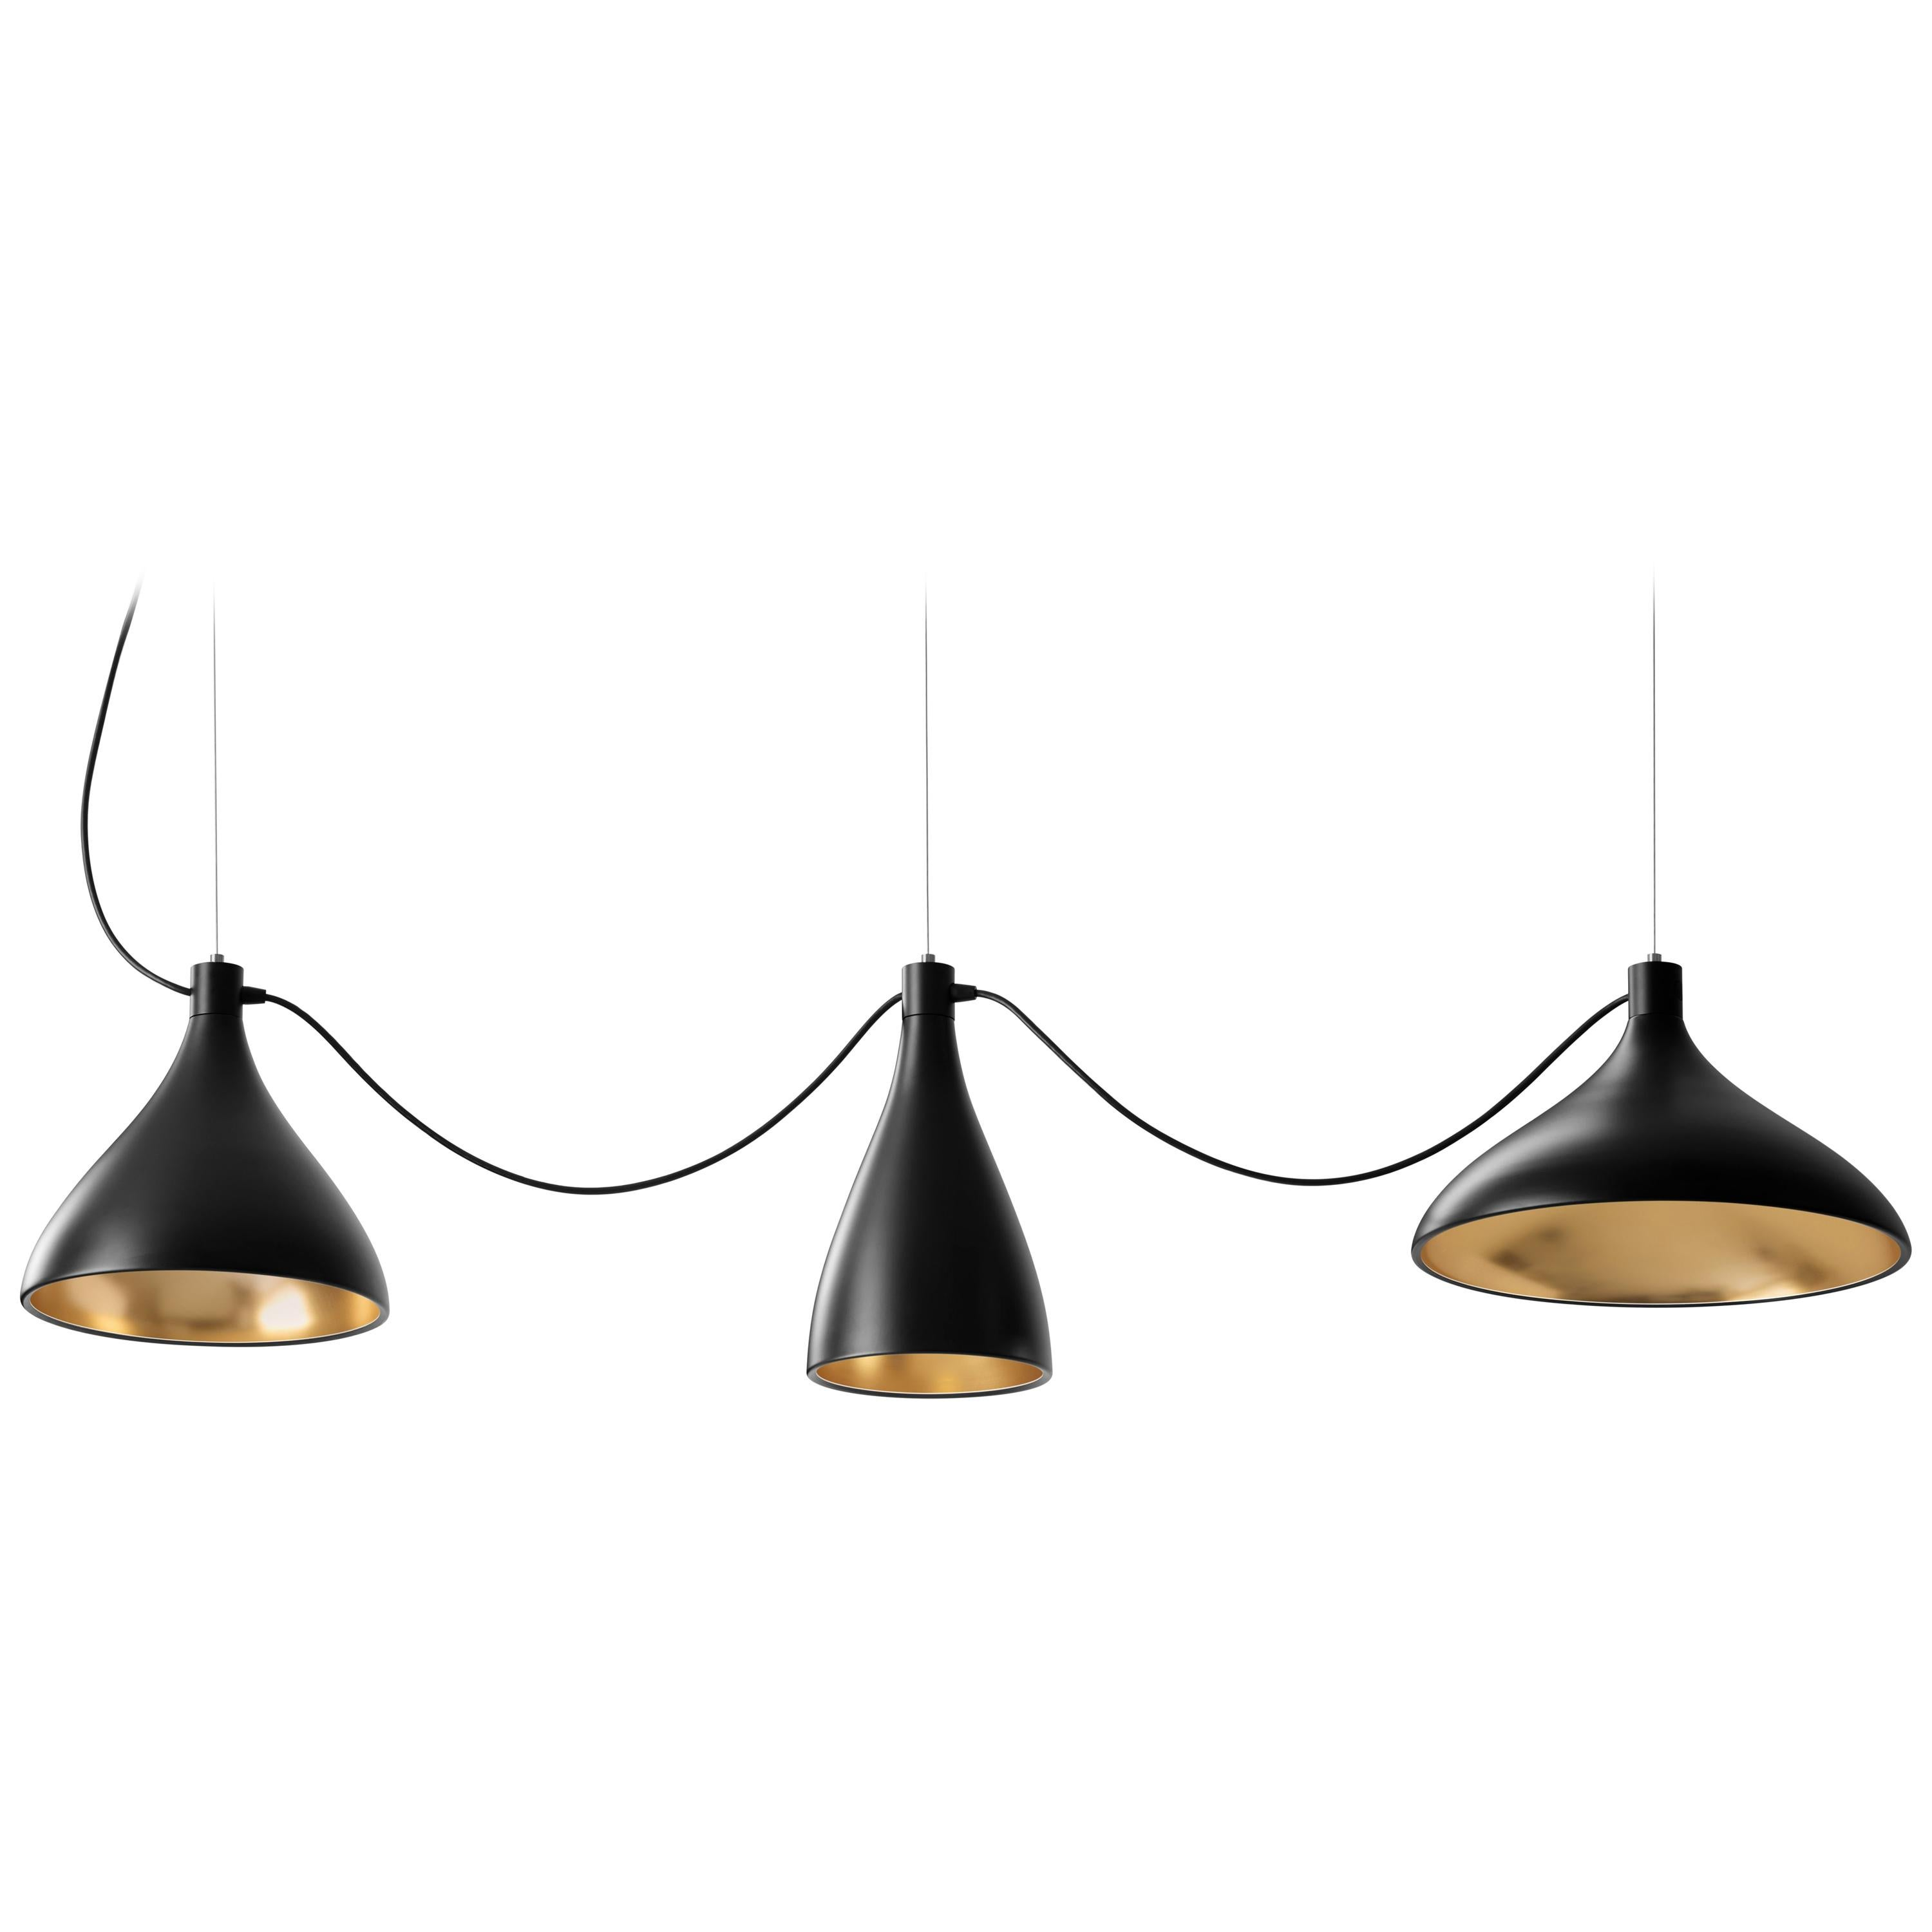 3-Piece Swell String Chandelier in Black and Brass by Pablo Designs